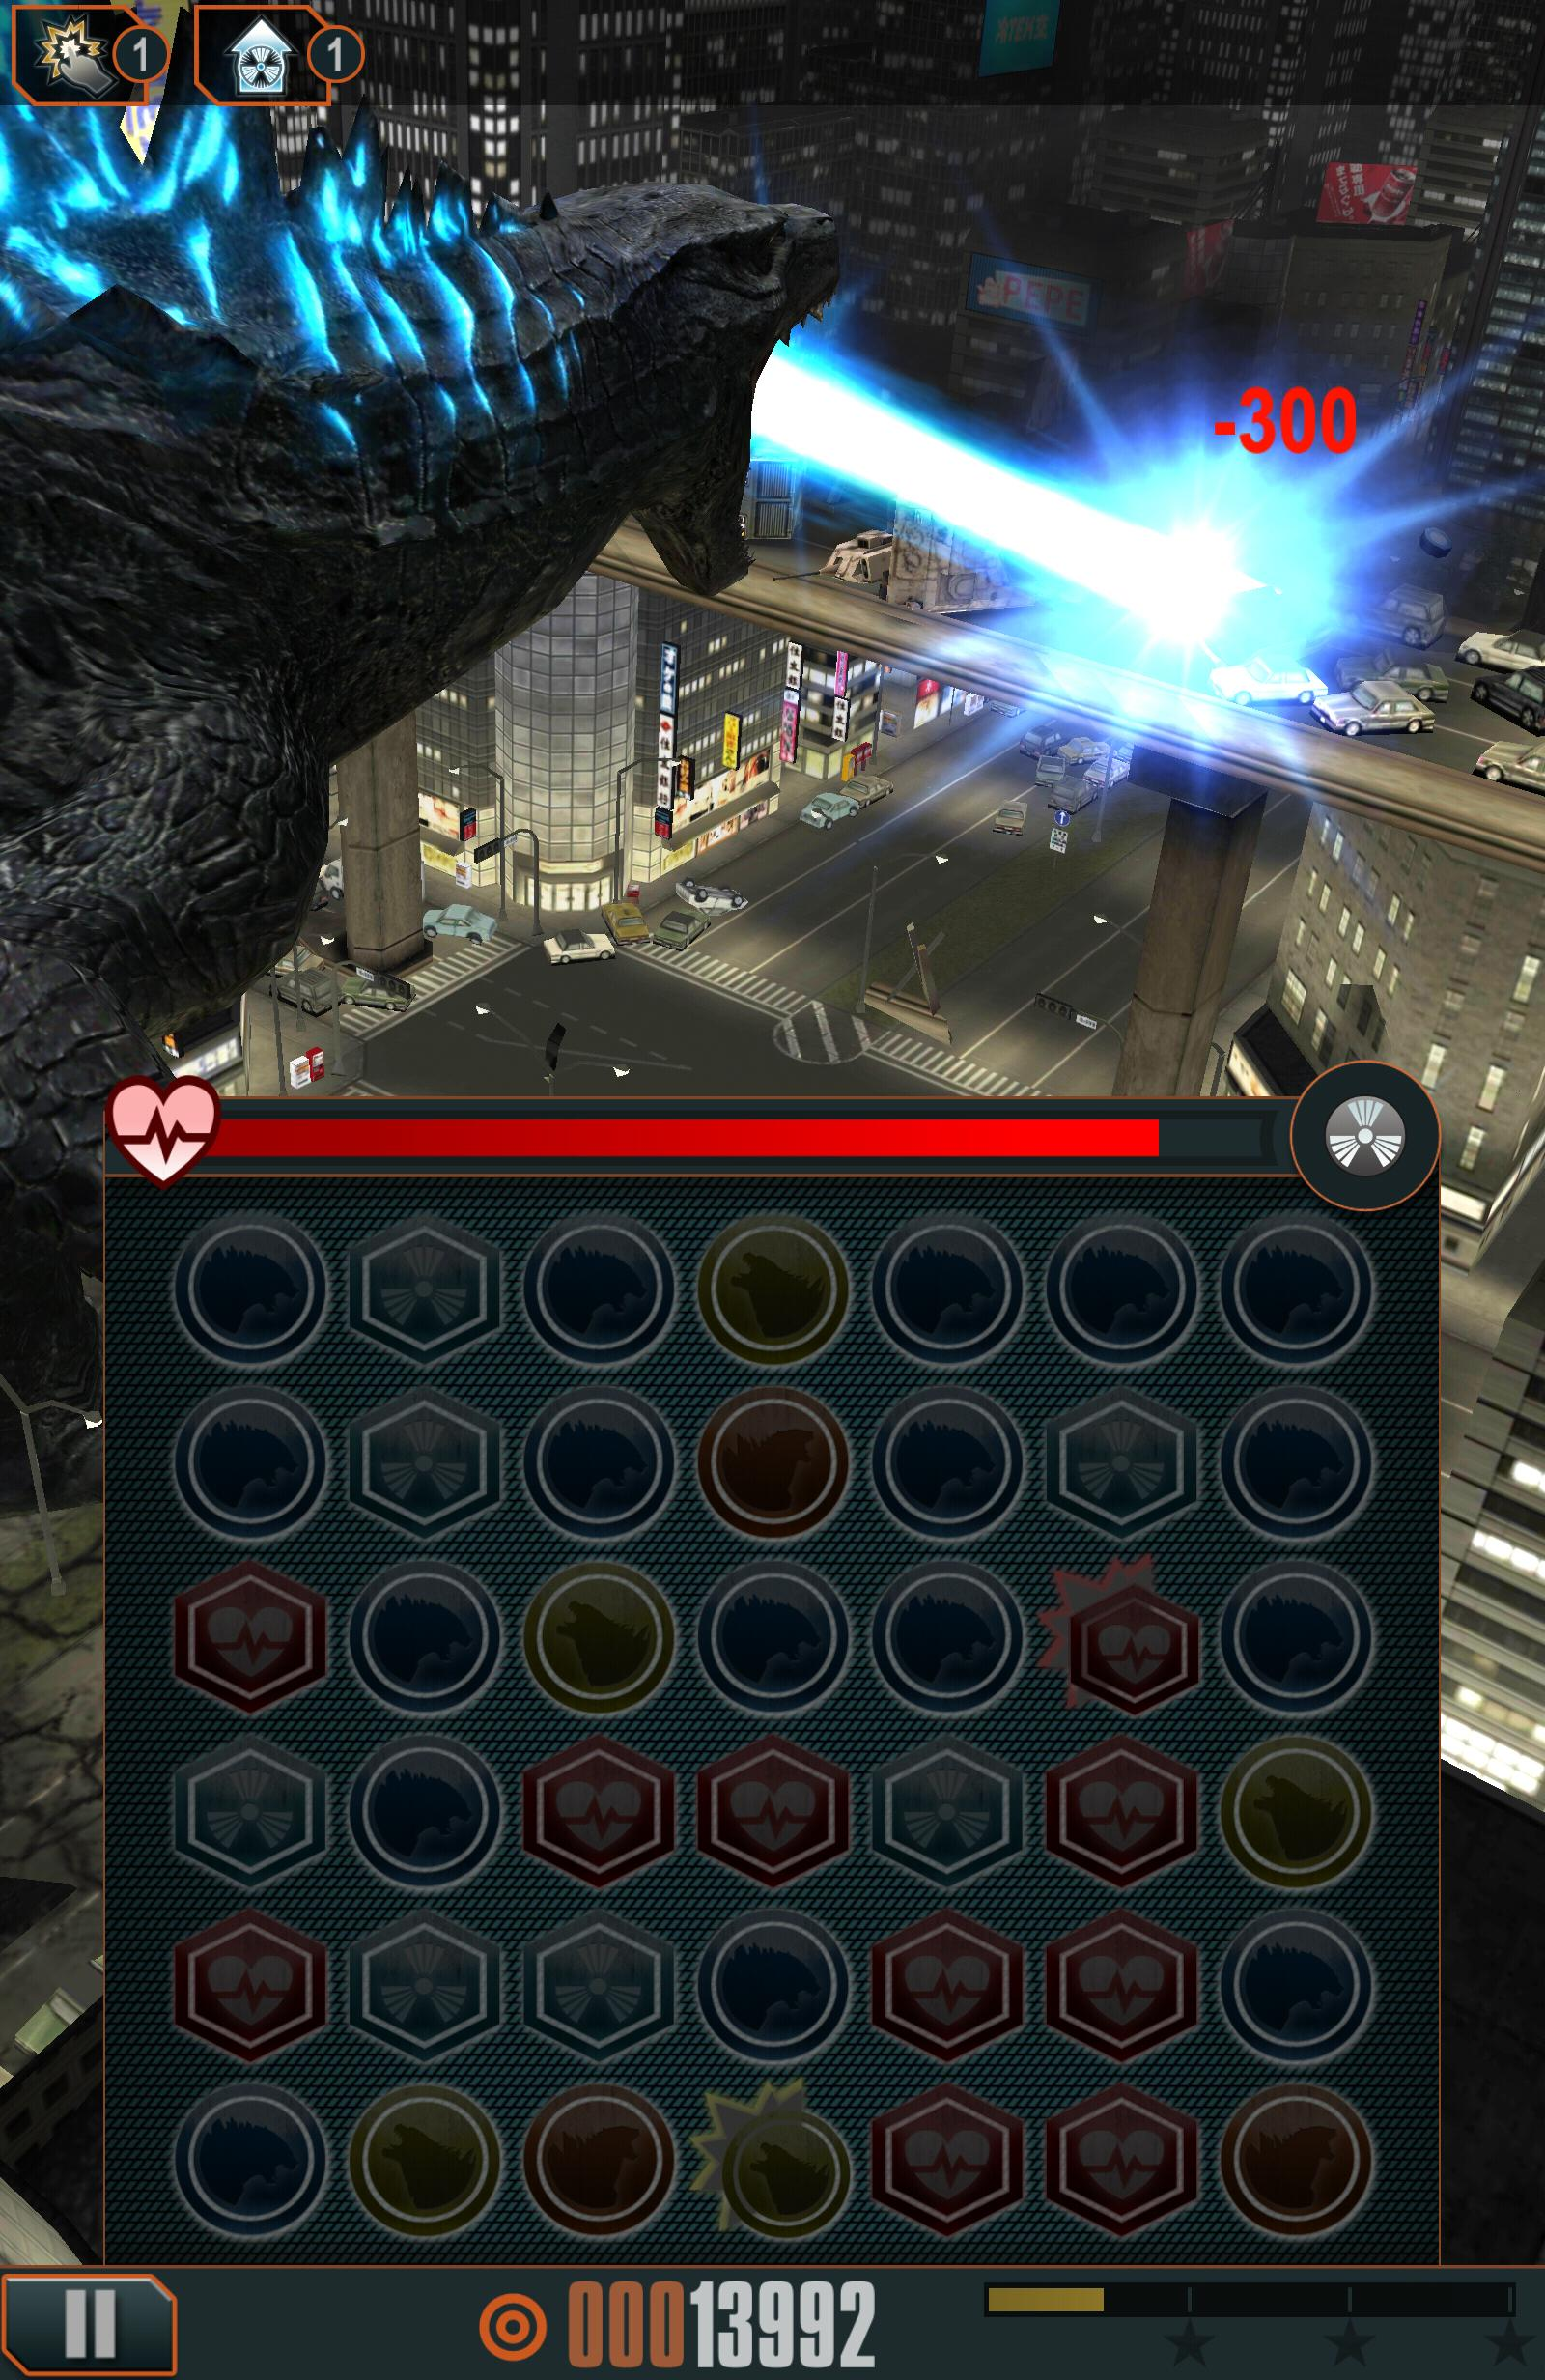 Godzilla - Smash3 screenshot #16